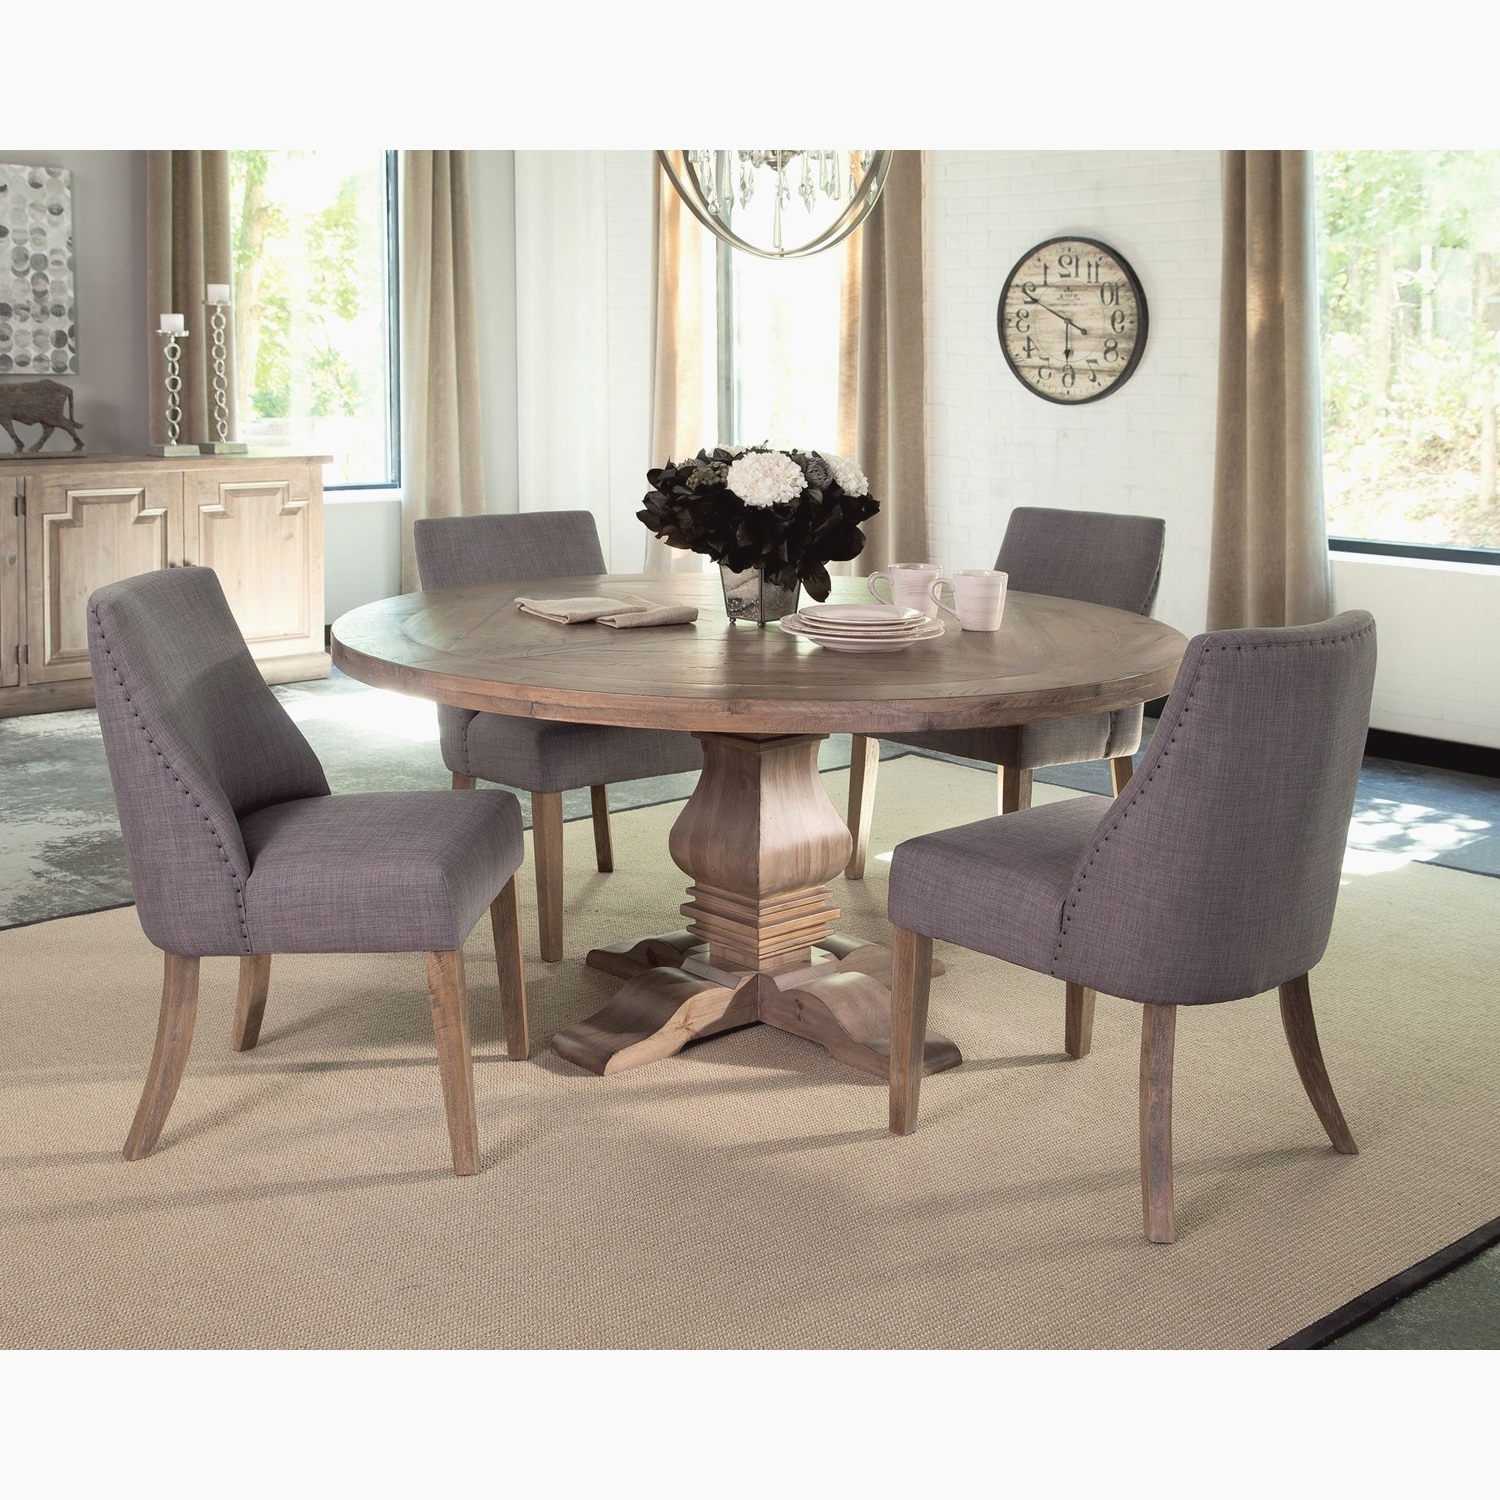 Dining Tables And Purple Chairs Pertaining To 2018 Purple Dining Room Chairs Awesome Florence Pine Round Dining Table (View 13 of 25)